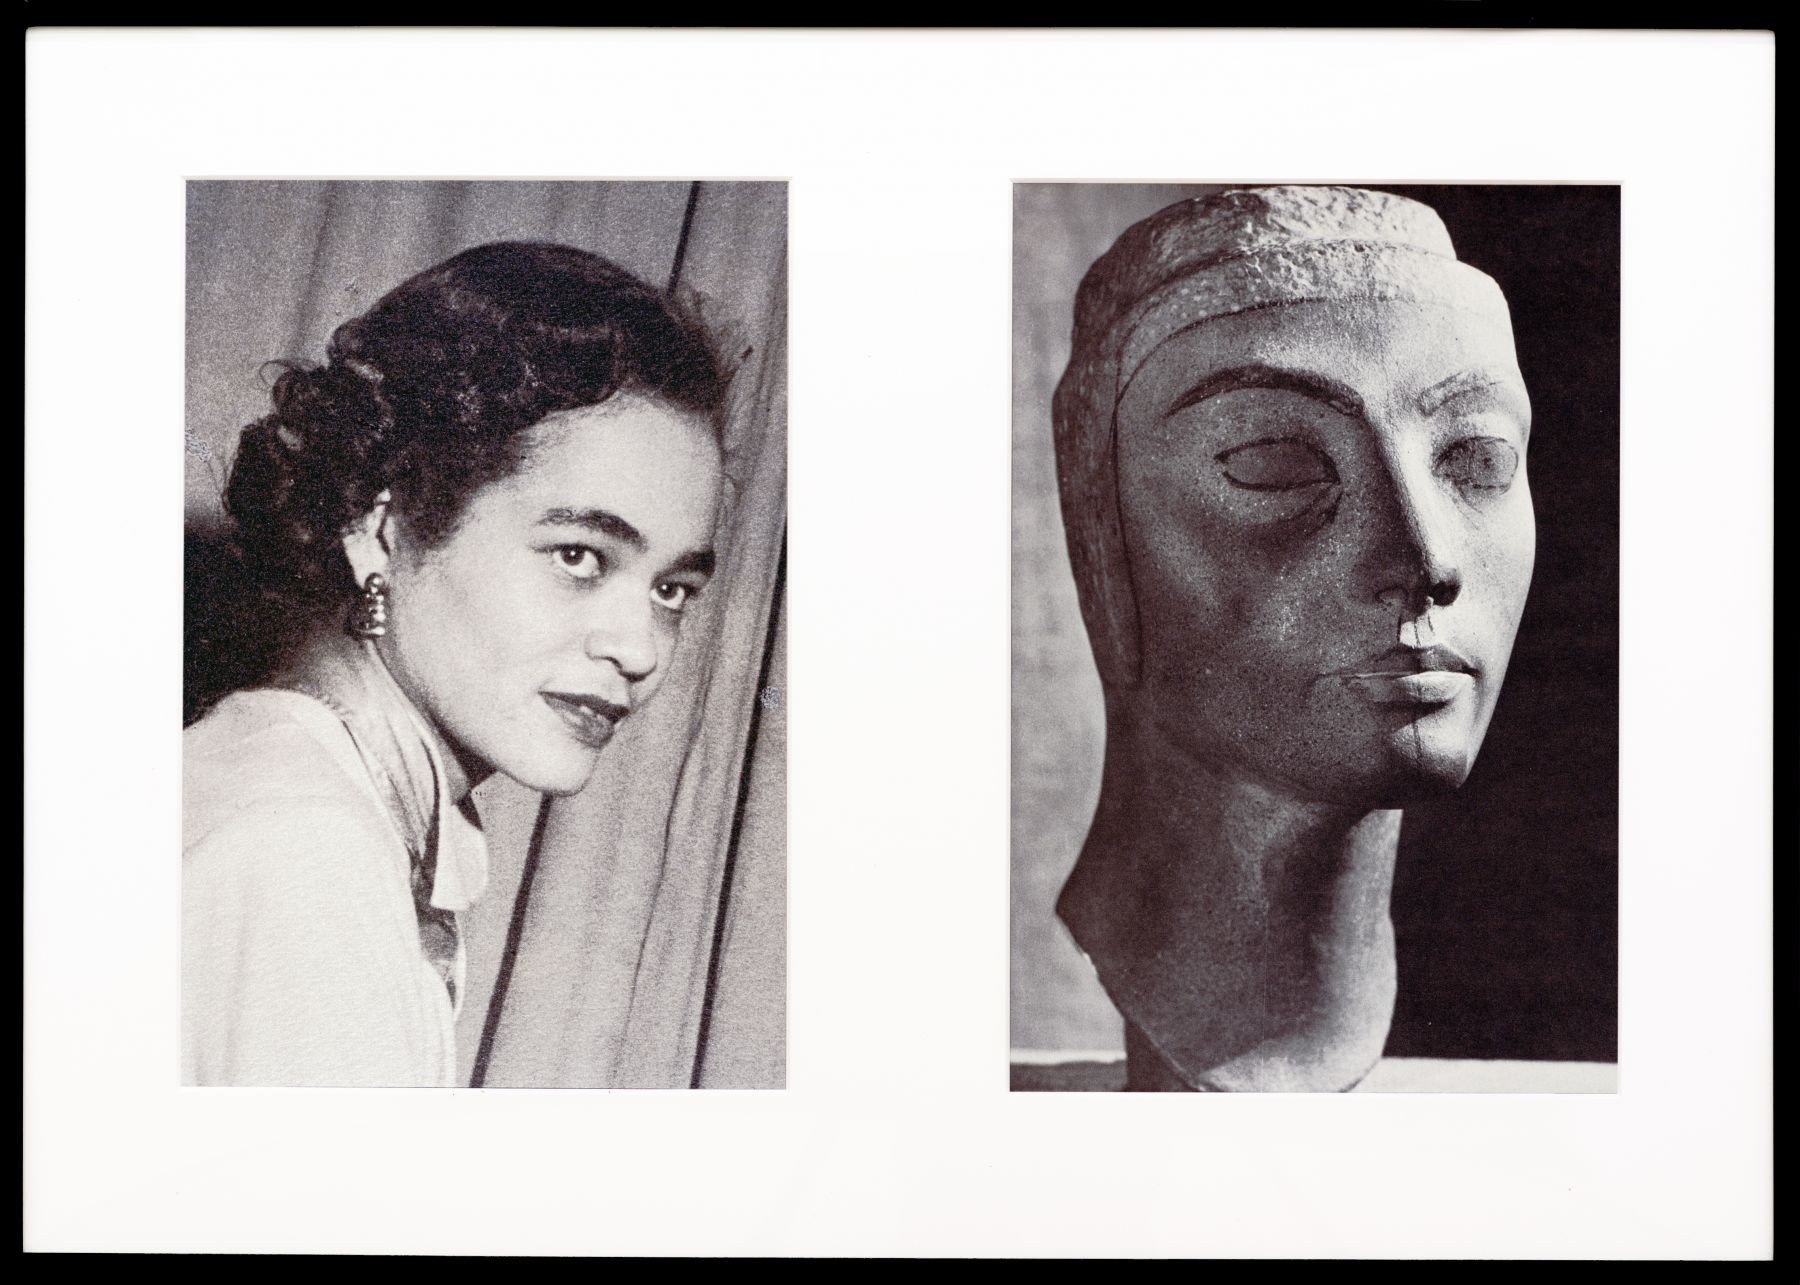 Miscegenated Family Album (Progress of Queens), L: Devonia, age 36; R: Nefertiti, age 36, 1980/1994, Cibachrome prints, 26h x 37w in (66.04h x 93.98w cm)